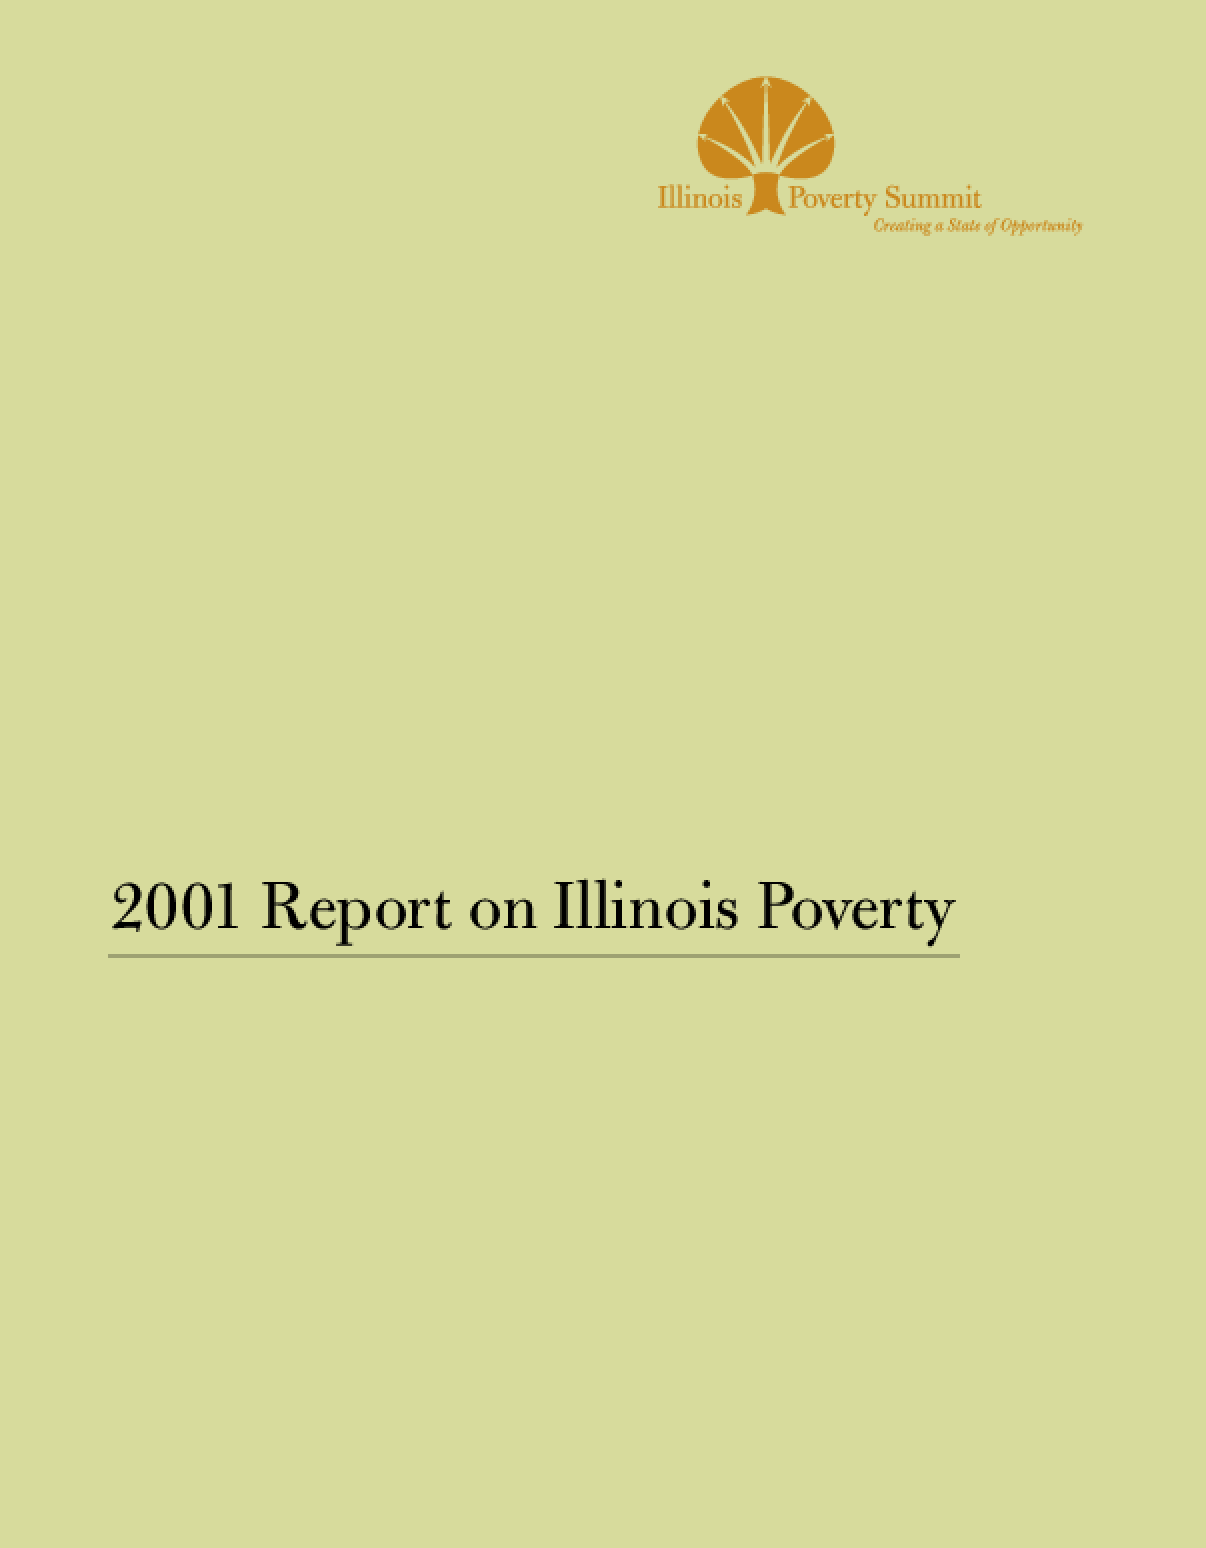 2001 Report on Illinois Poverty